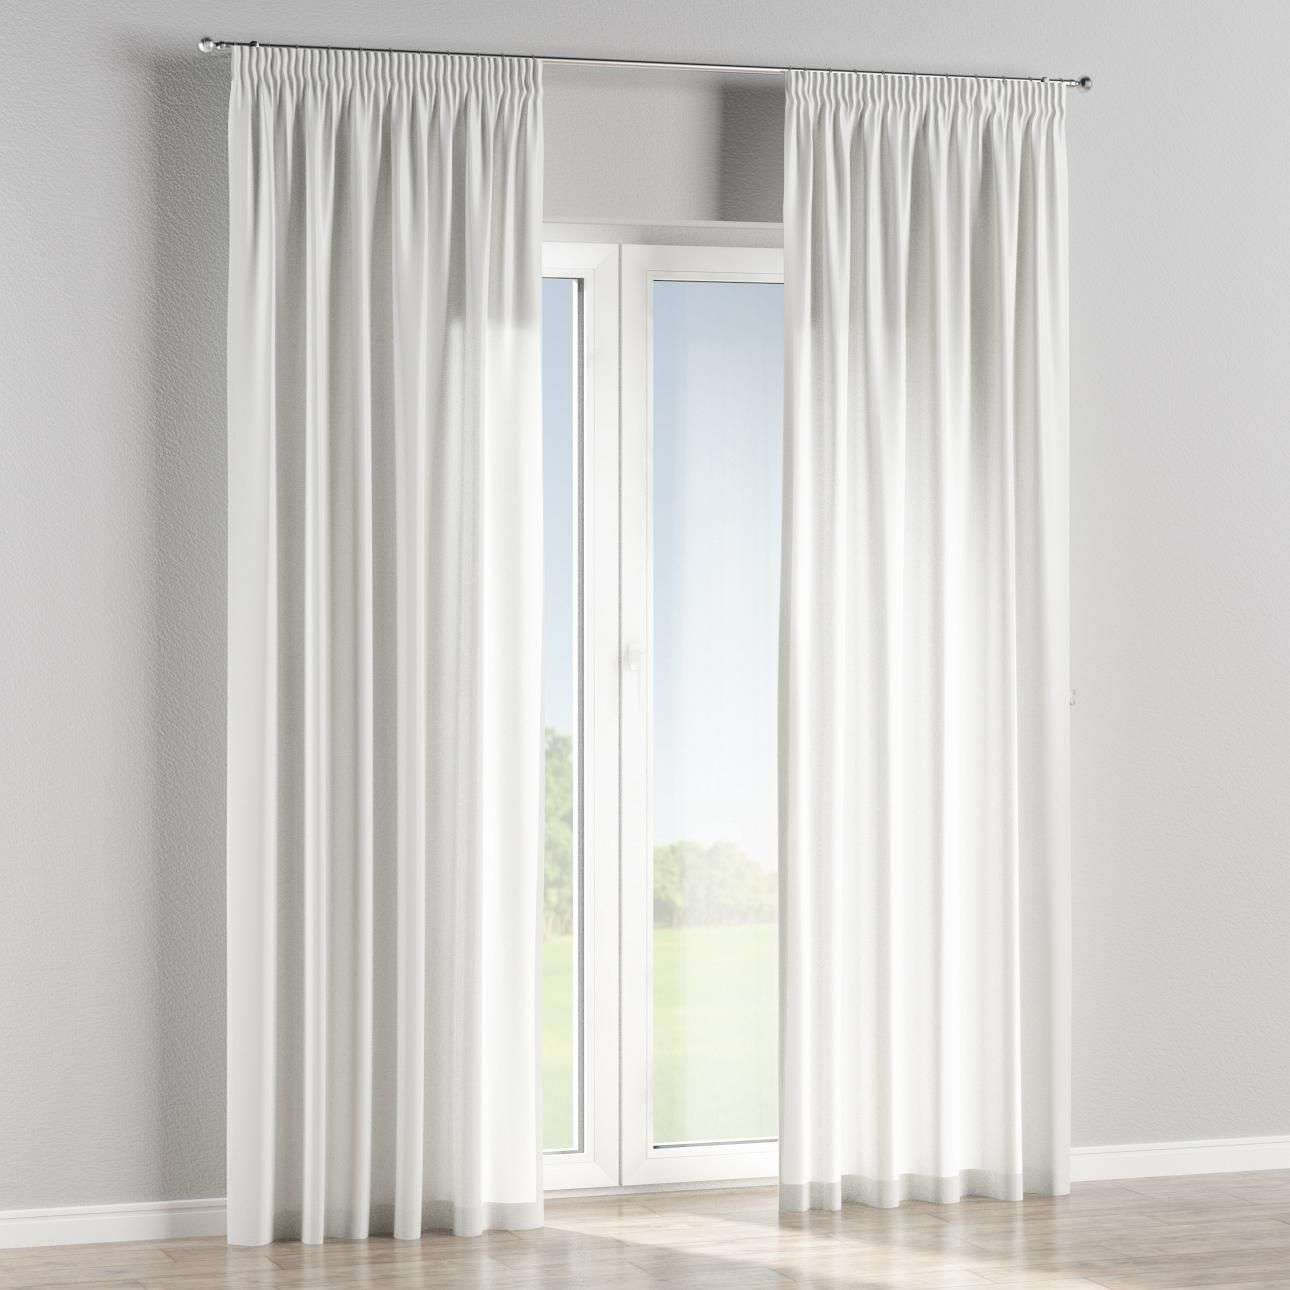 Pencil pleat curtains in collection Arcana, fabric: 104-02